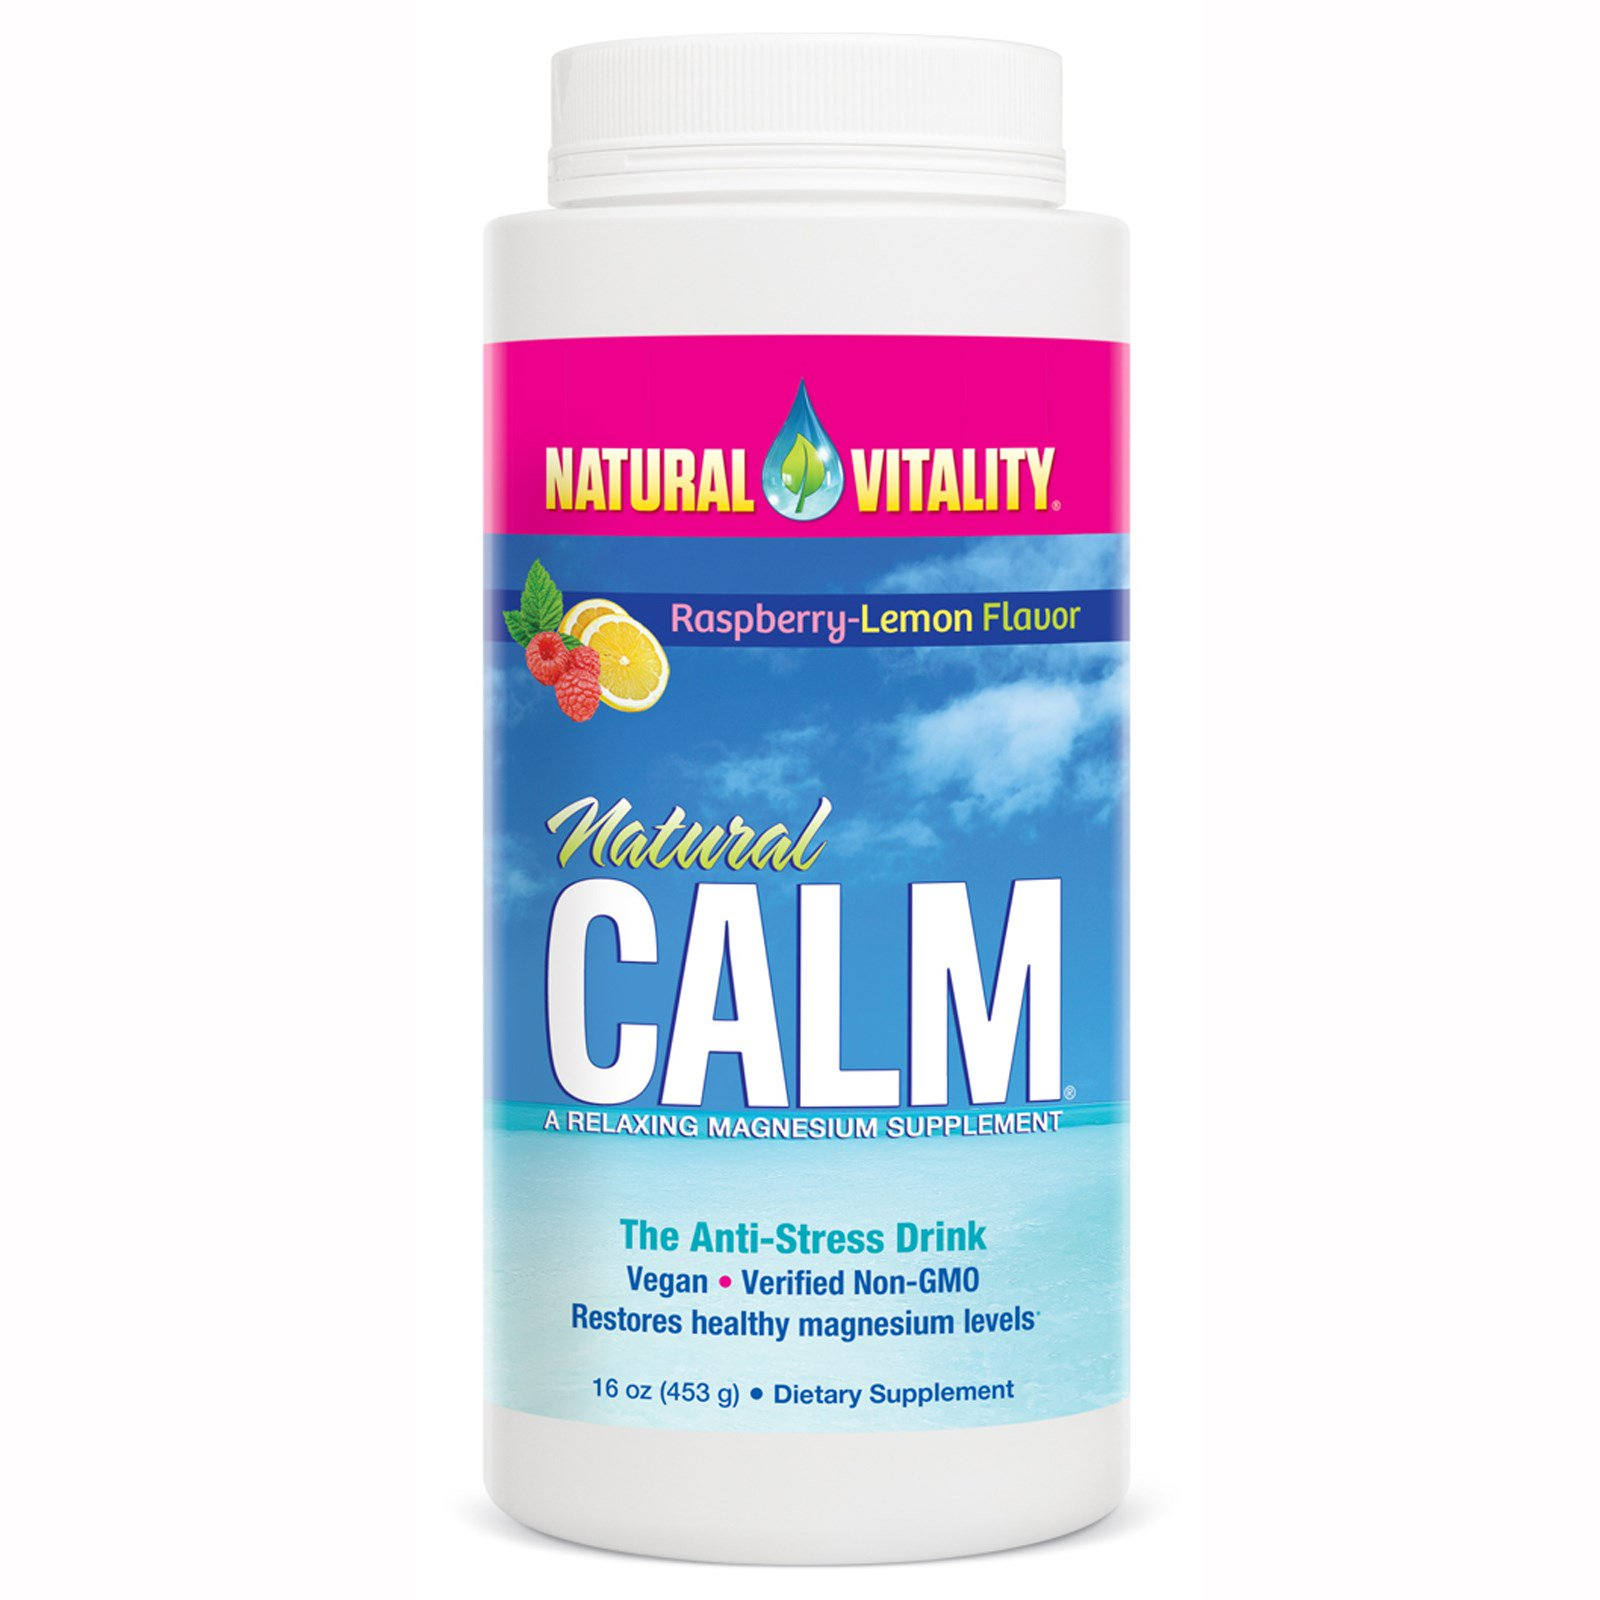 Natural Calm Drink Reviews